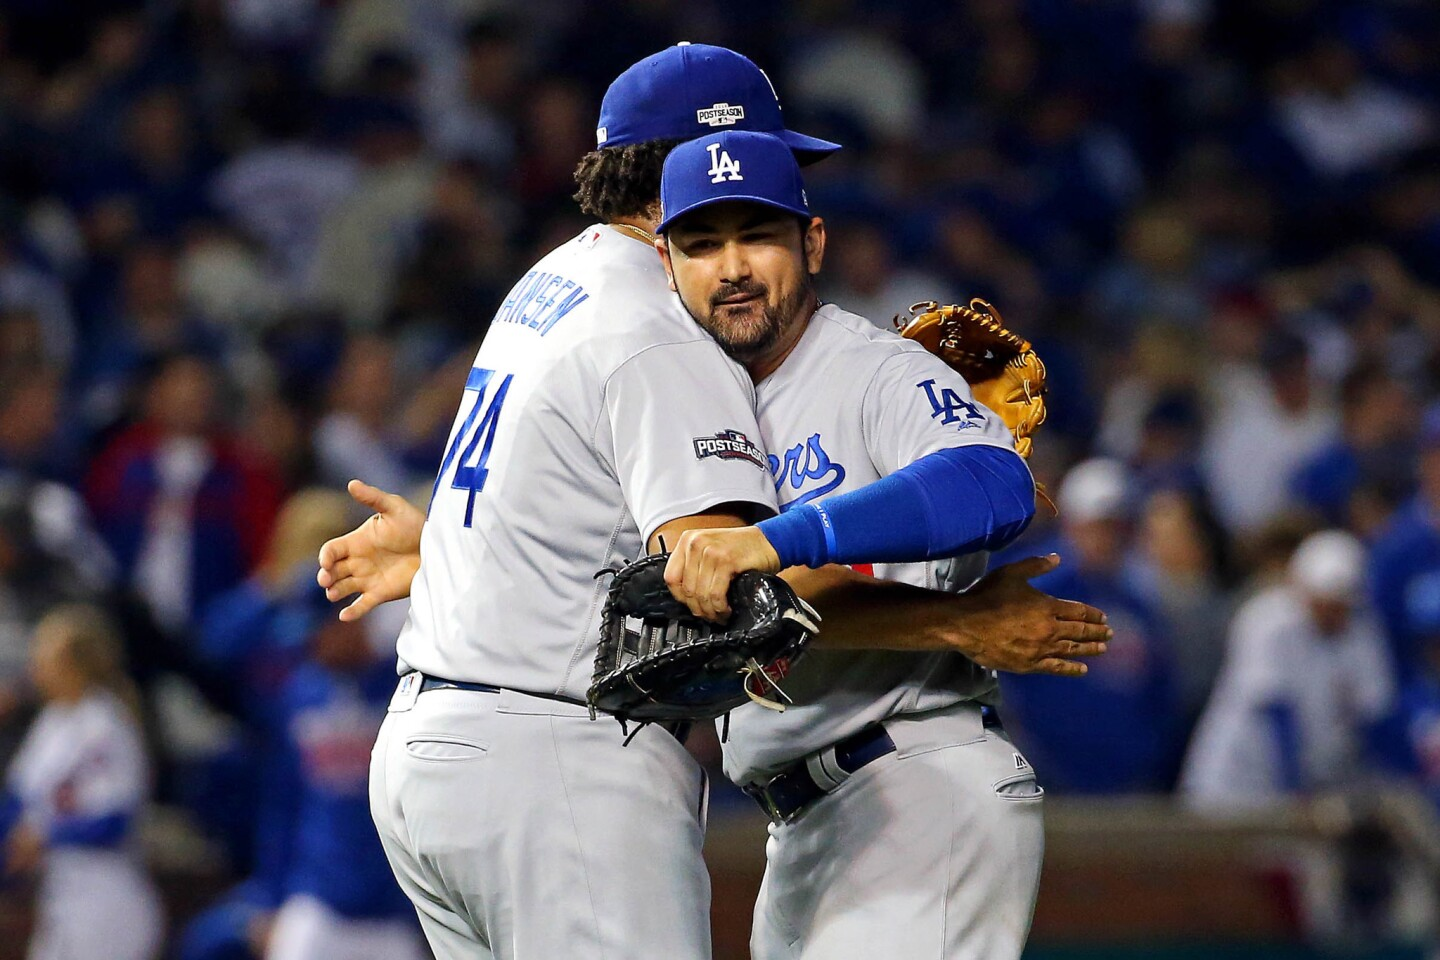 Oct 16, 2016; Chicago, IL, USA; Los Angeles Dodgers first baseman Adrian Gonzalez (23) and relief pitcher Kenley Jansen (74) celebrate after beating the Chicago Cubs in game two of the 2016 NLCS playoff baseball series at Wrigley Field. Mandatory Credit: Jerry Lai-USA TODAY Sports ** Usable by SD ONLY **